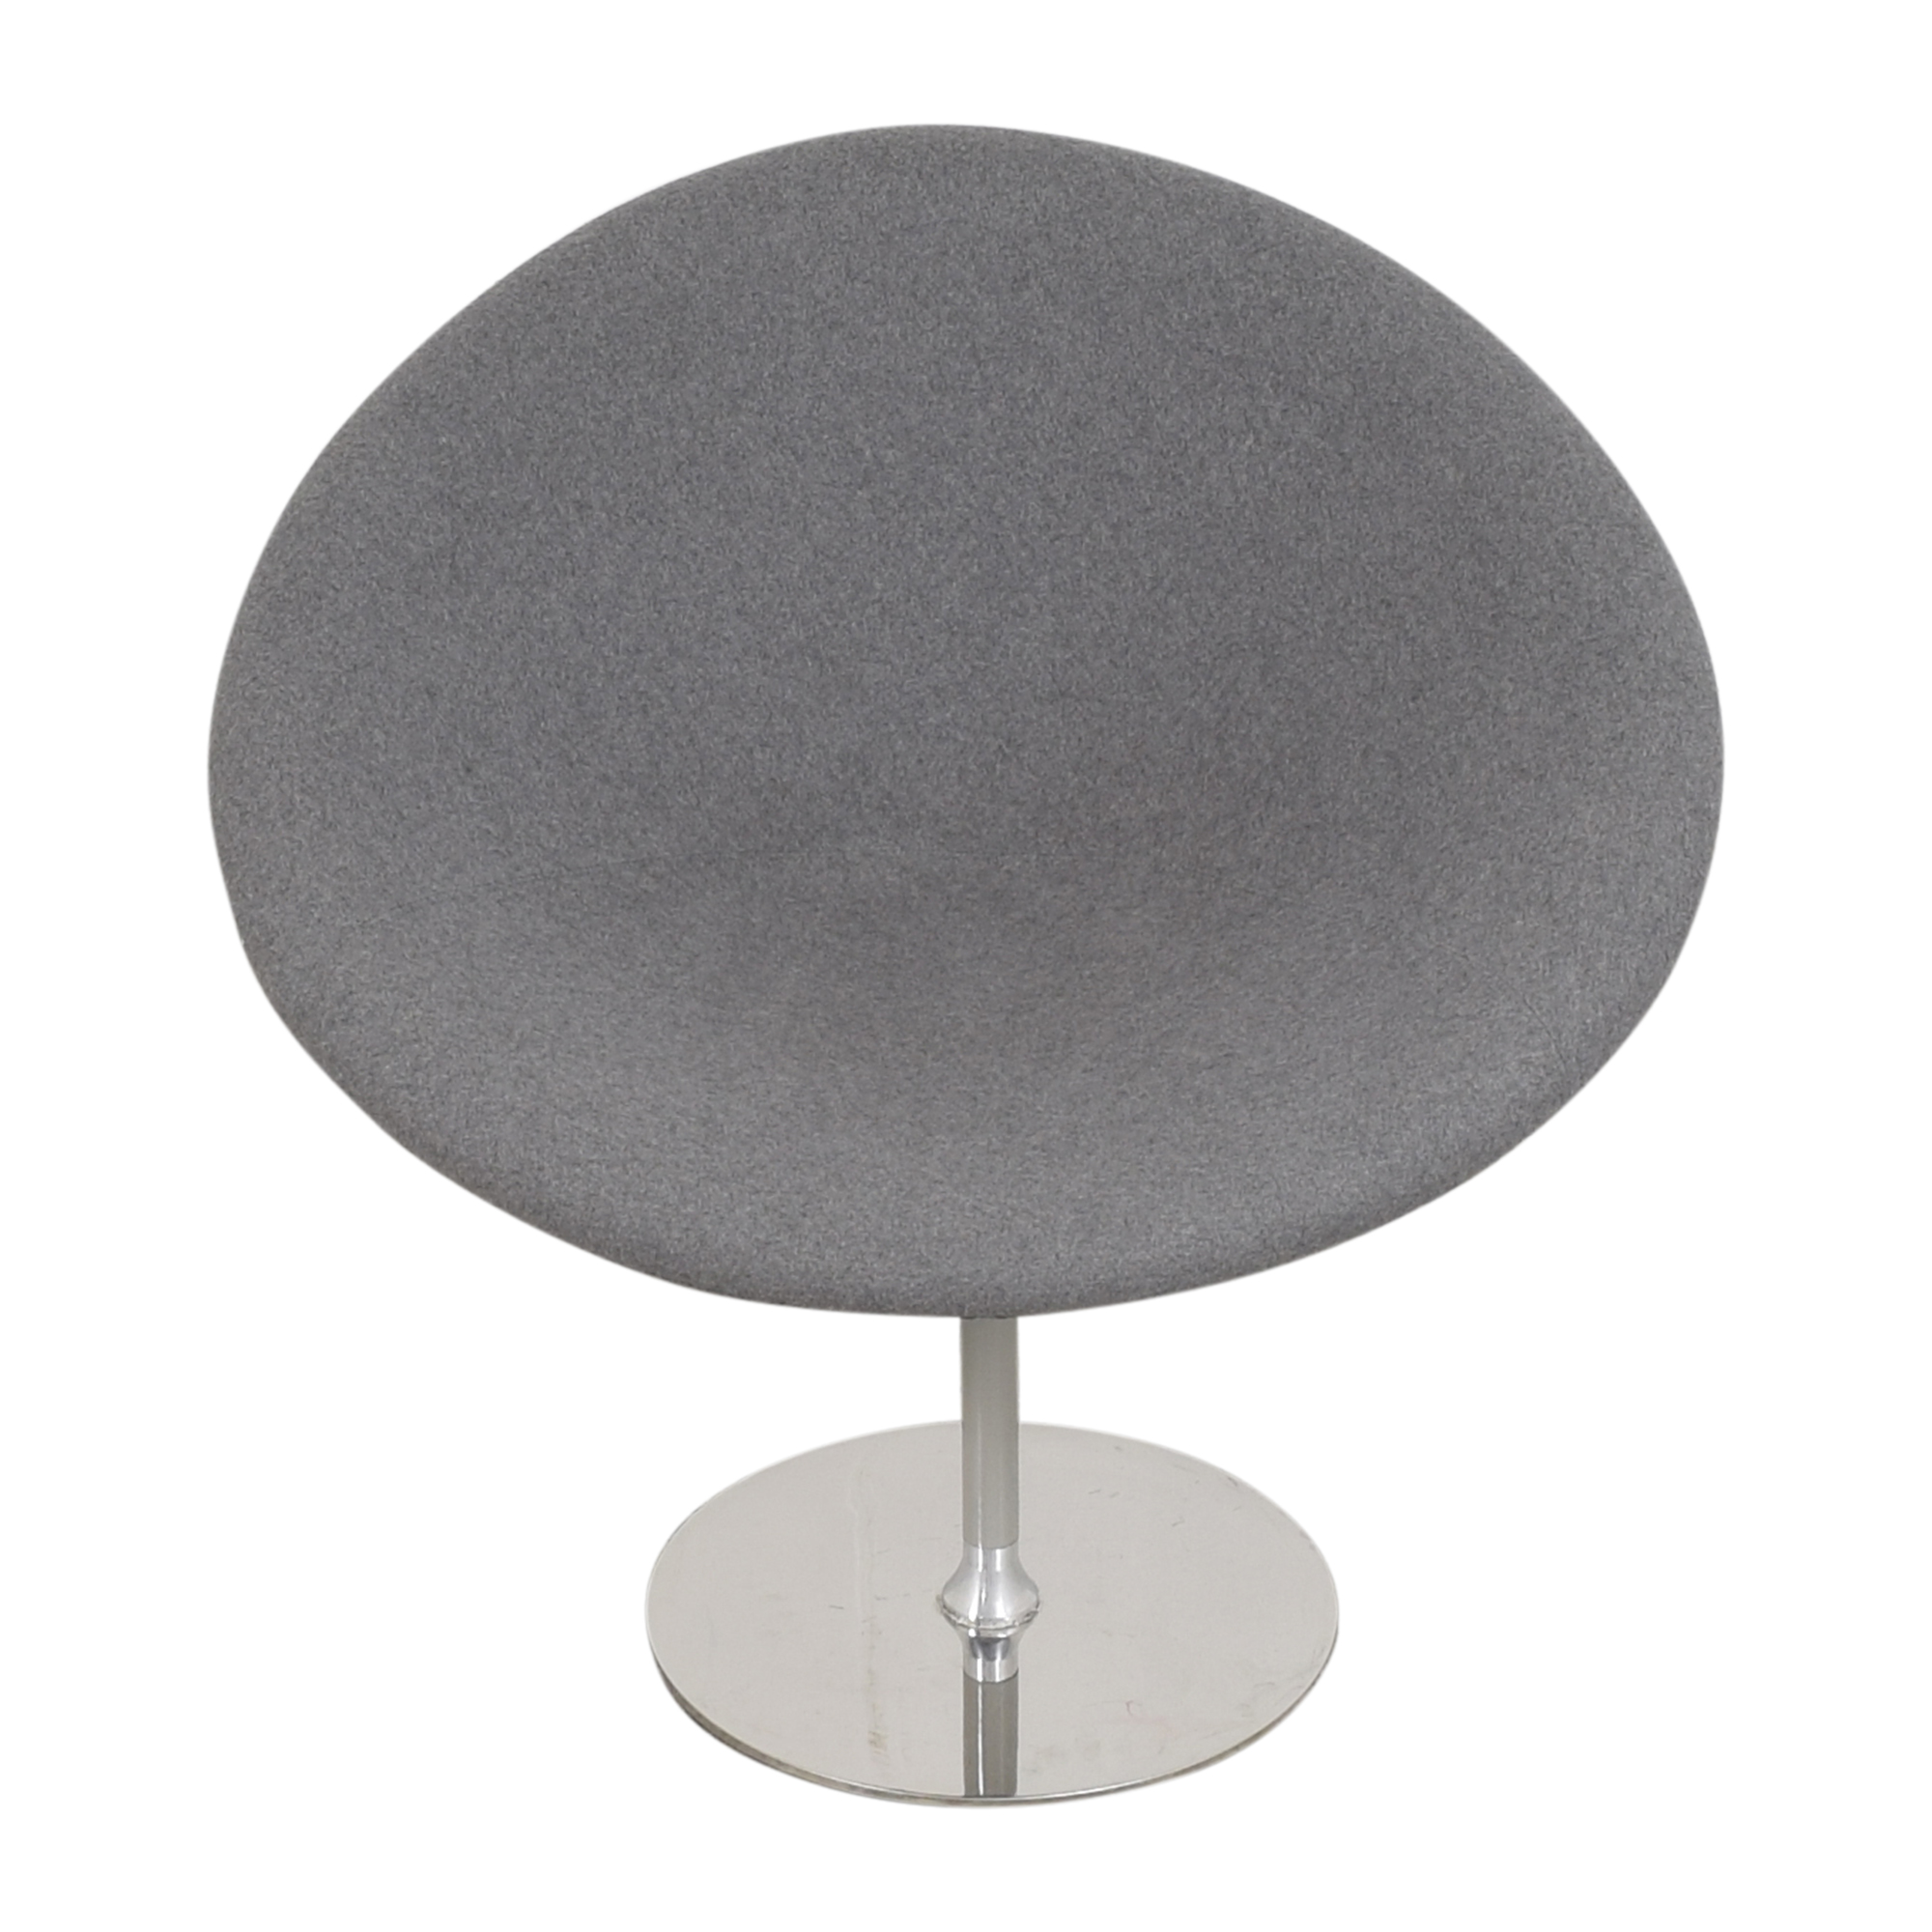 France and Son France and Son Round Swivel Chair ma